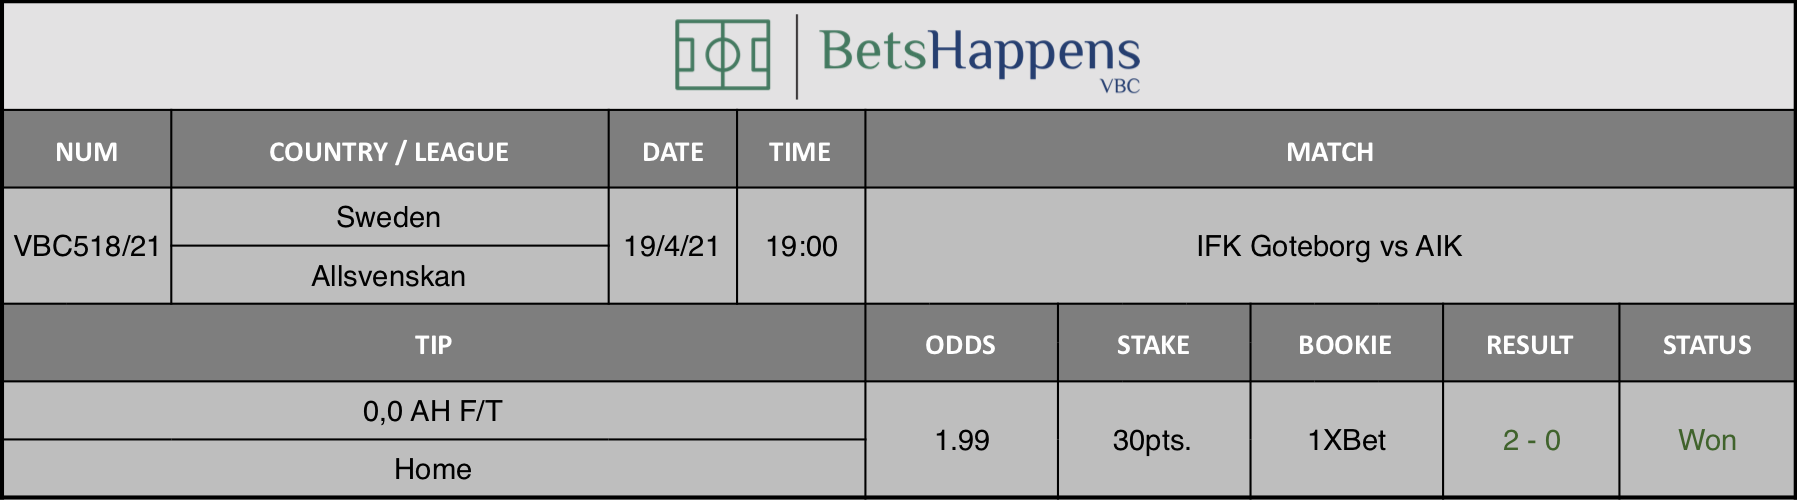 Results of our tip for the IFK Goteborg vs AIK match where 0,0 AH F/T Home is recommended.